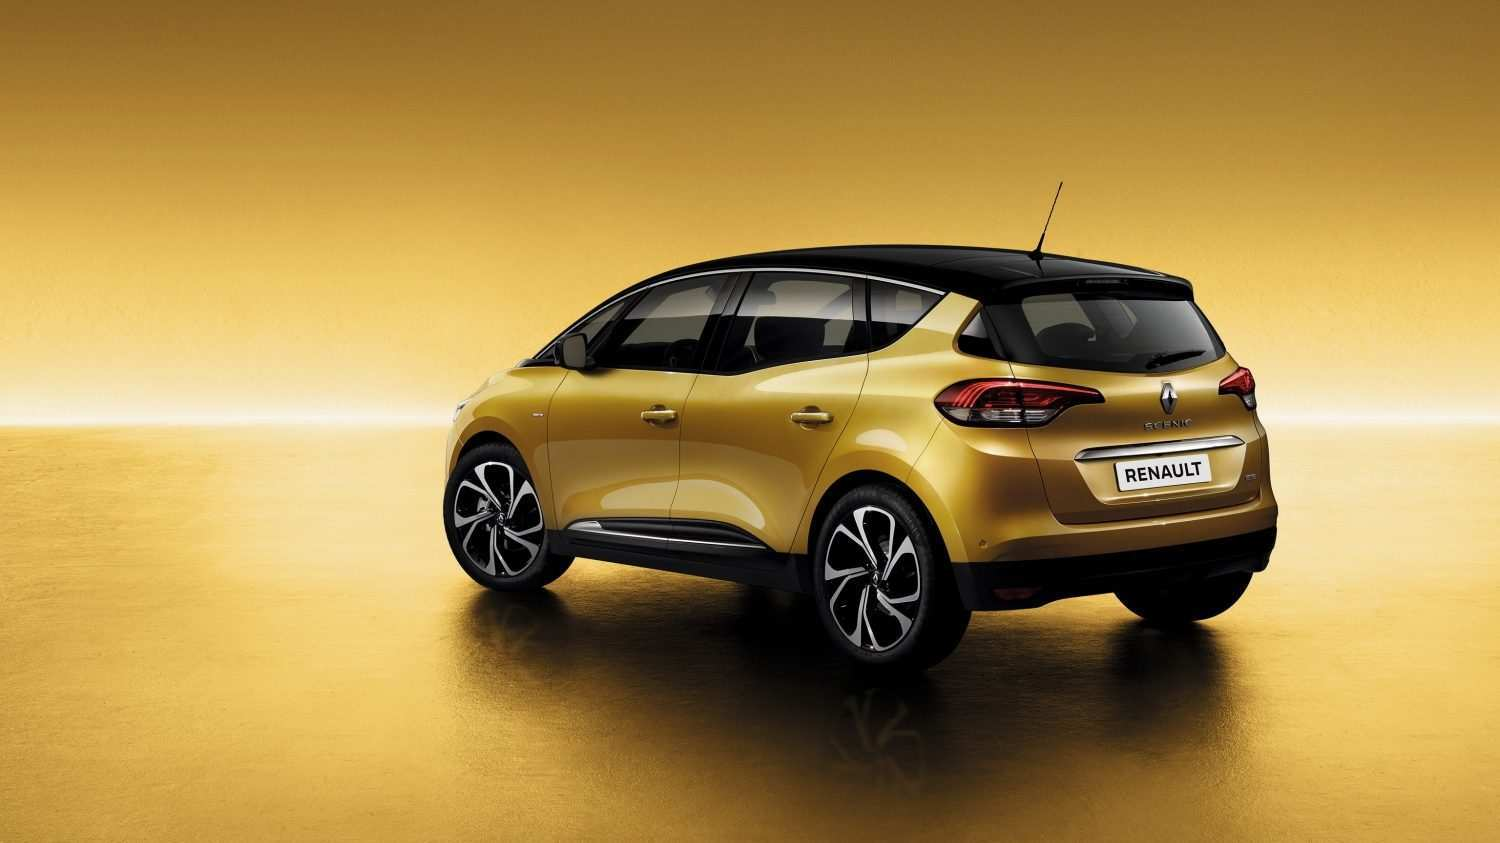 51 The Best Renault Scenic 2019 Spy Shoot